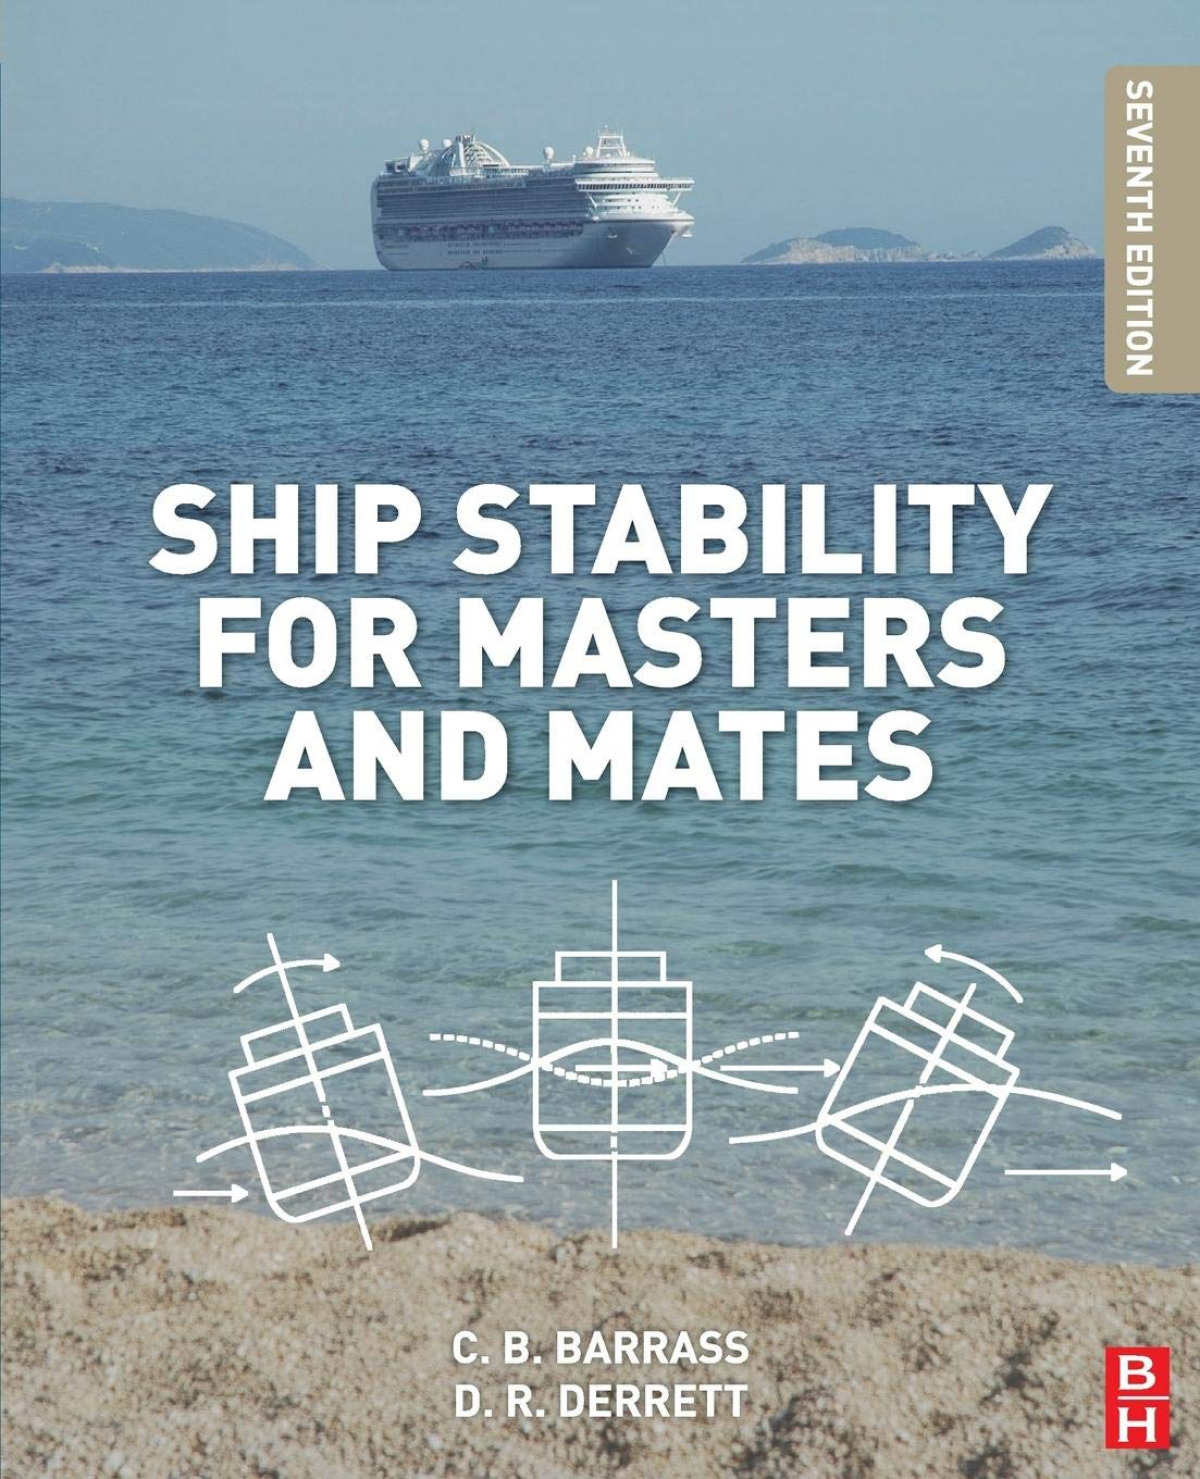 SHIP STABILITY FOR MASTERS AND MATES 7ªED.